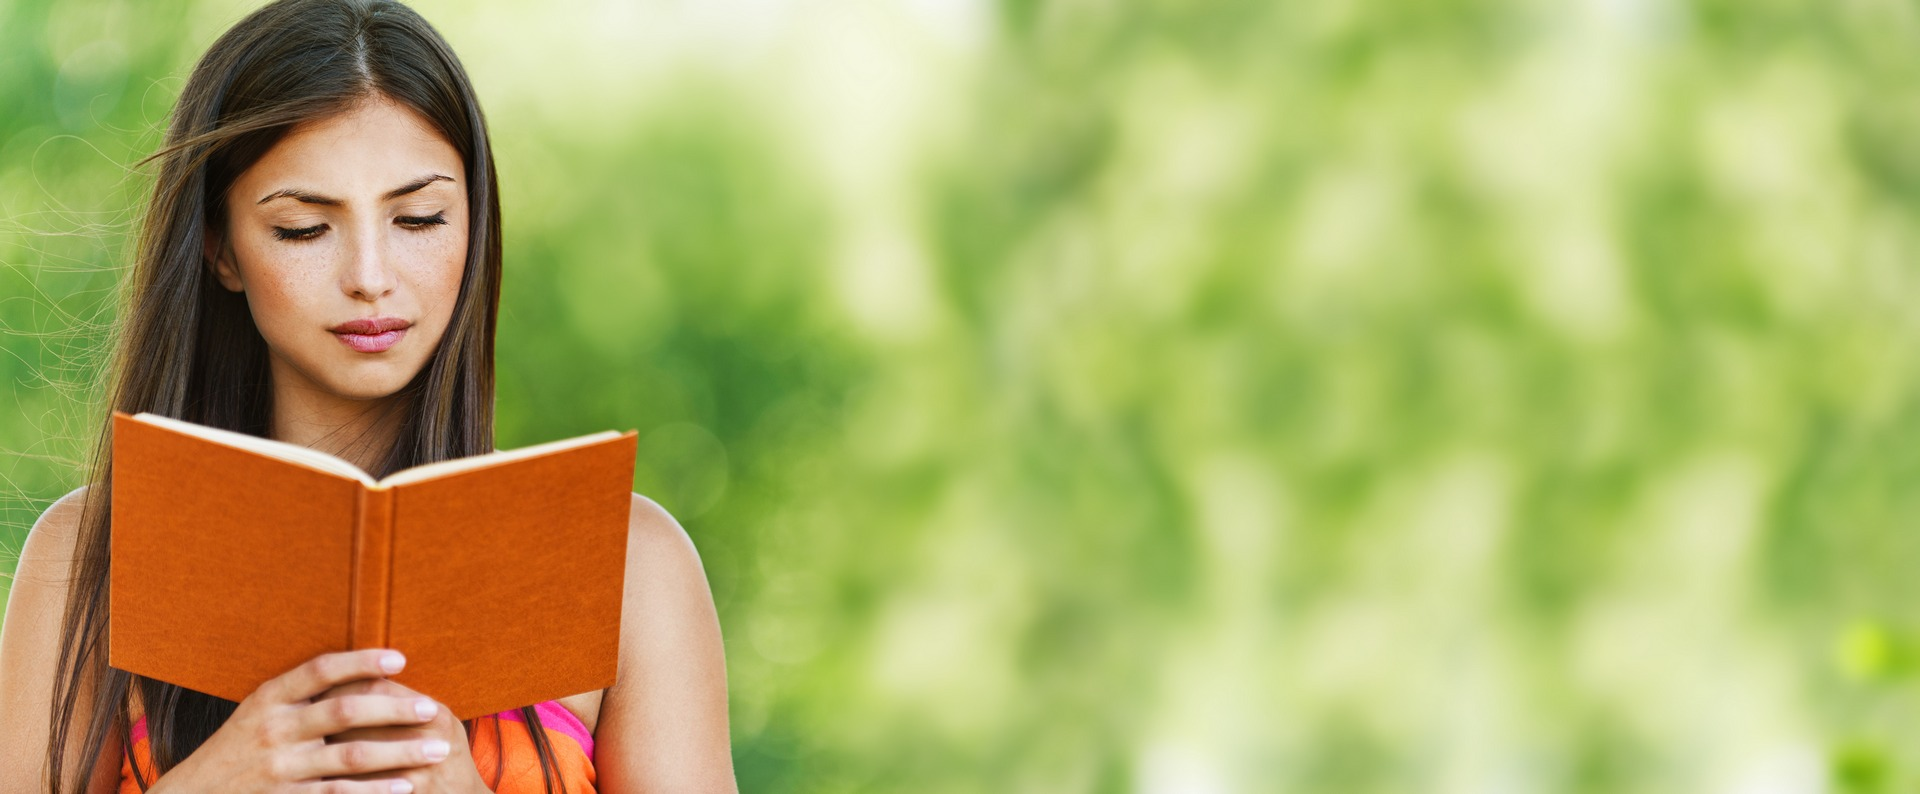 girl-with-red-book